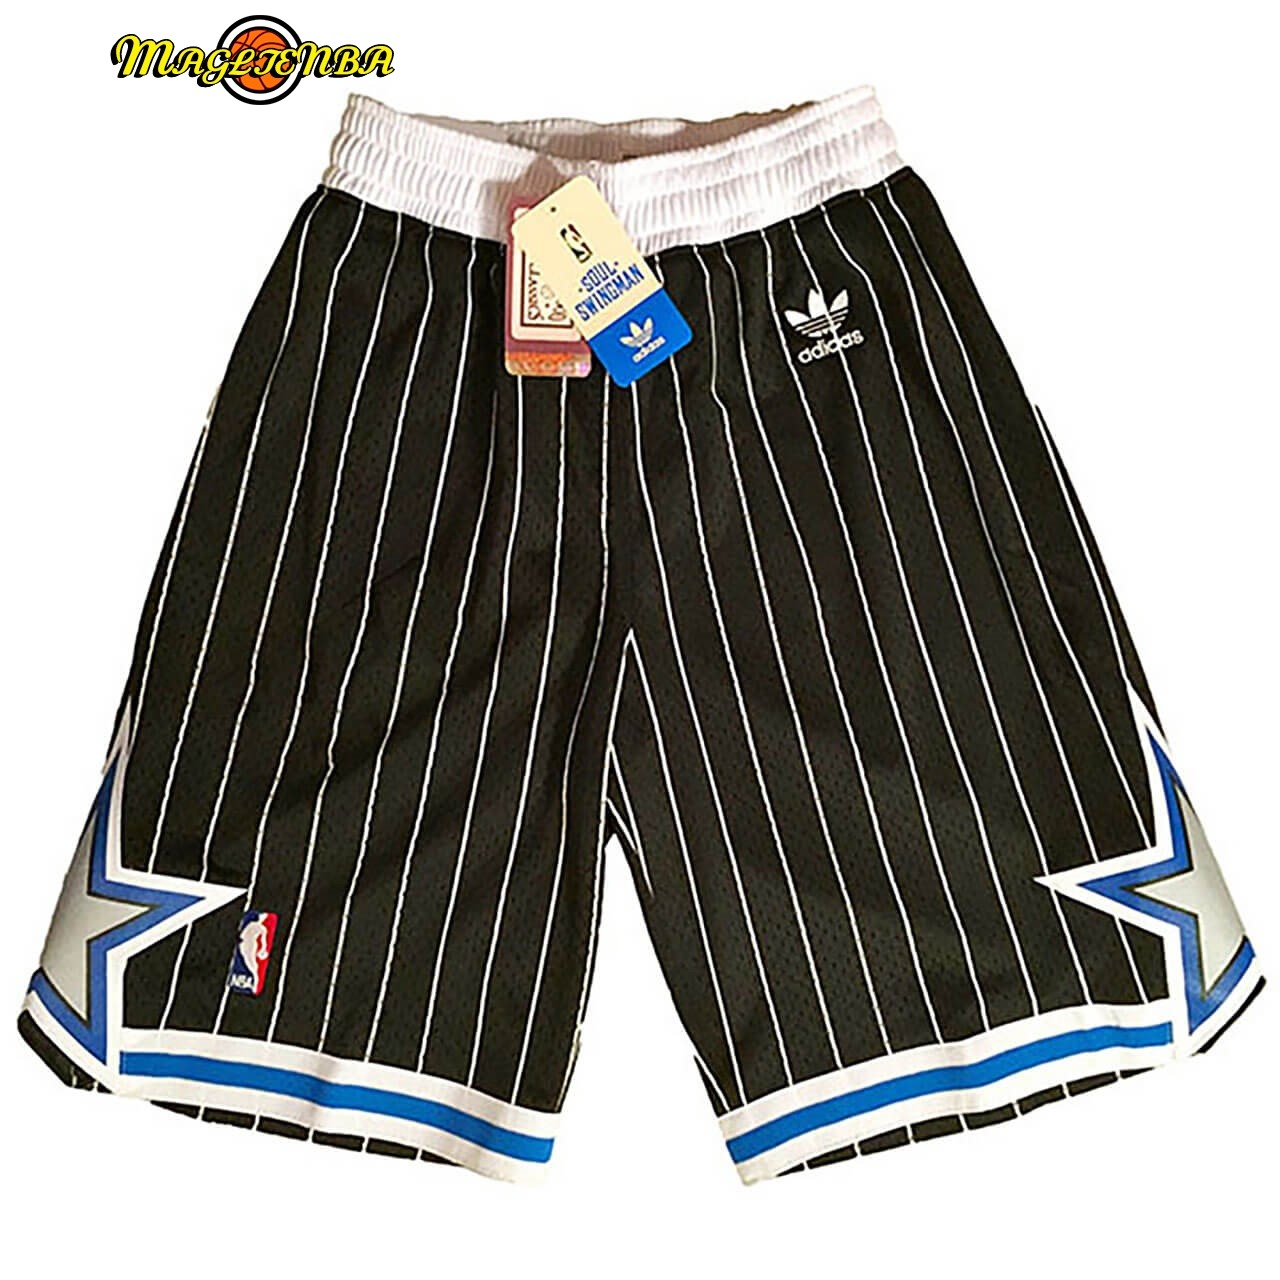 Pantaloni Basket Orlando Magic Nike Nero